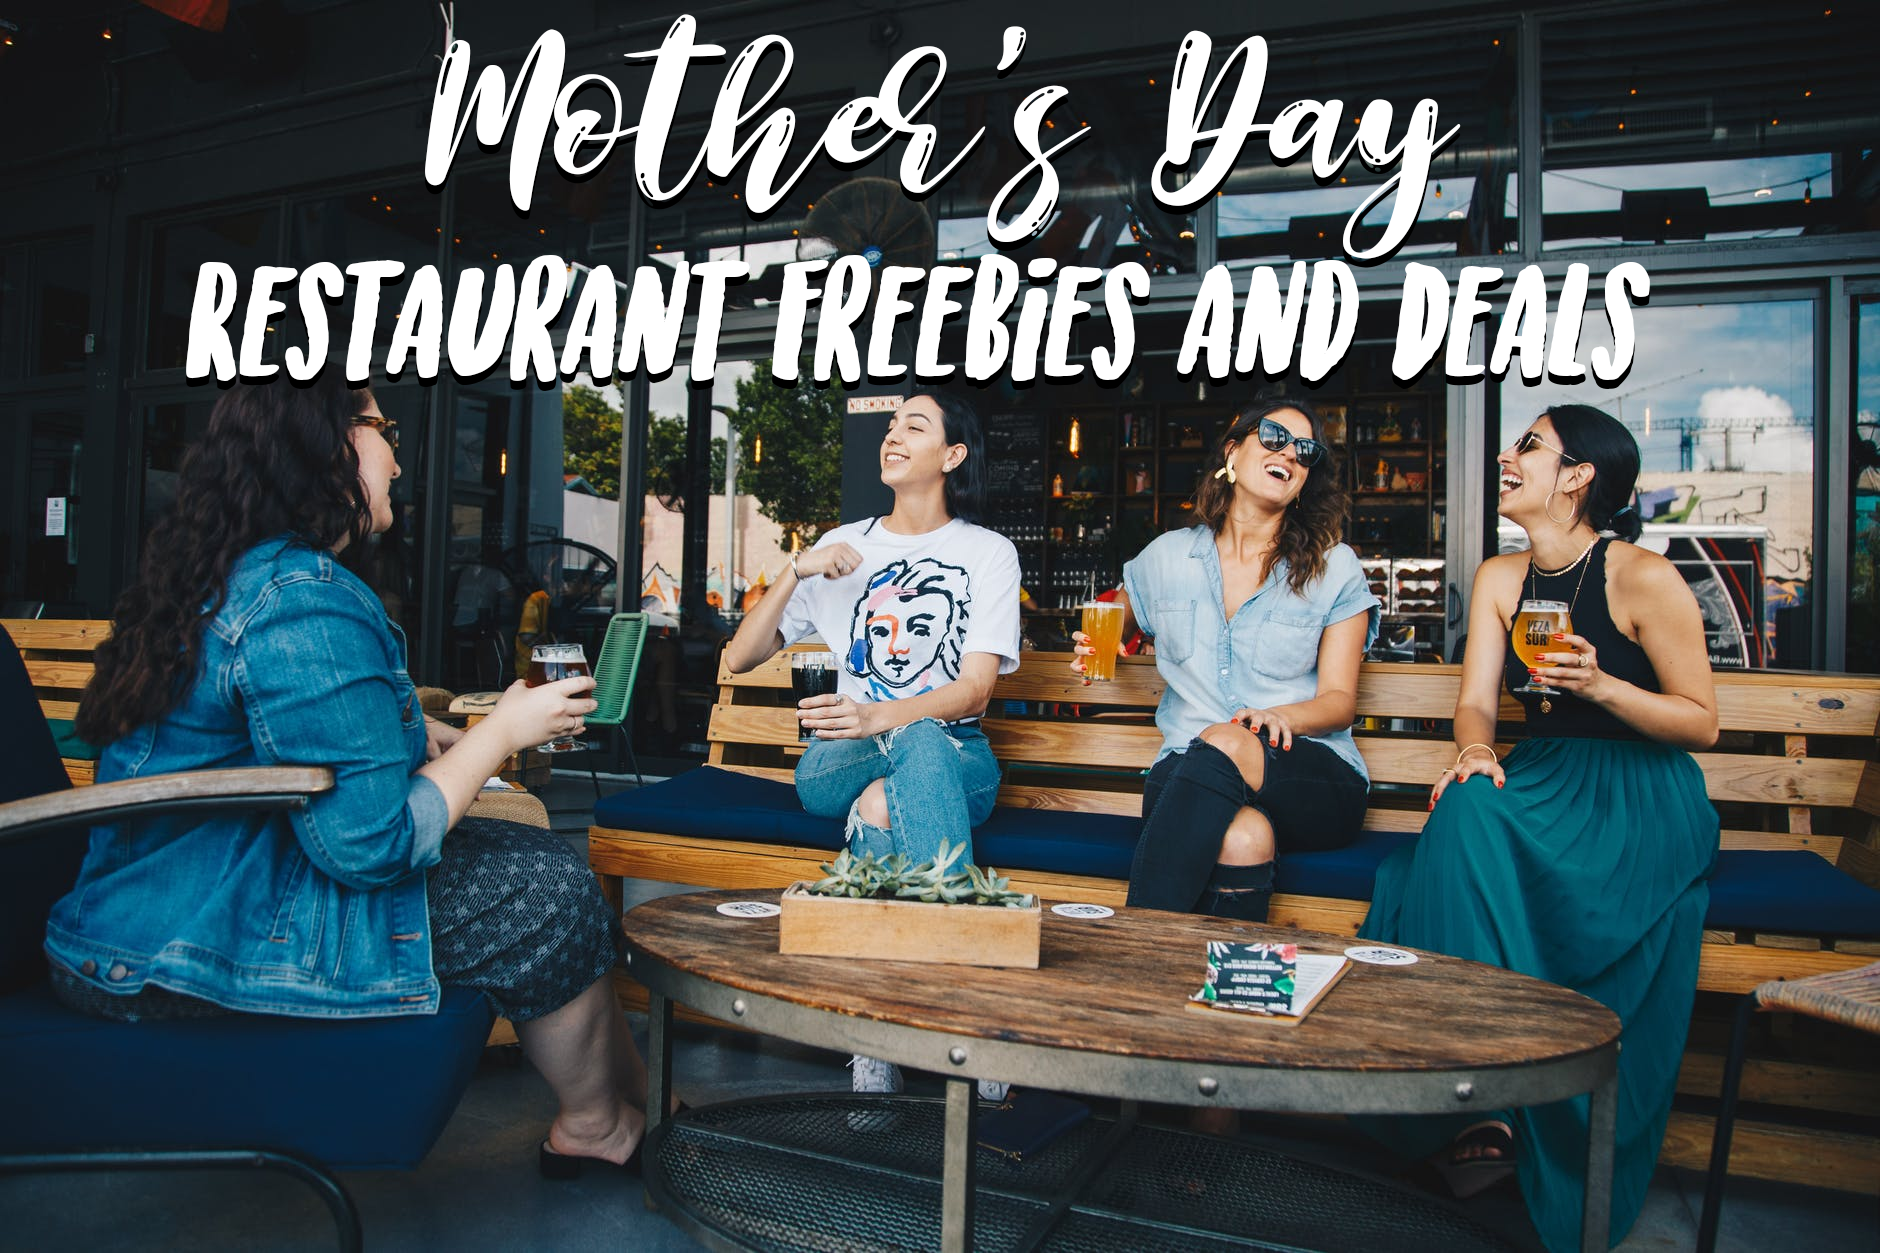 Mother's Day Restaurant Freebies and Deals